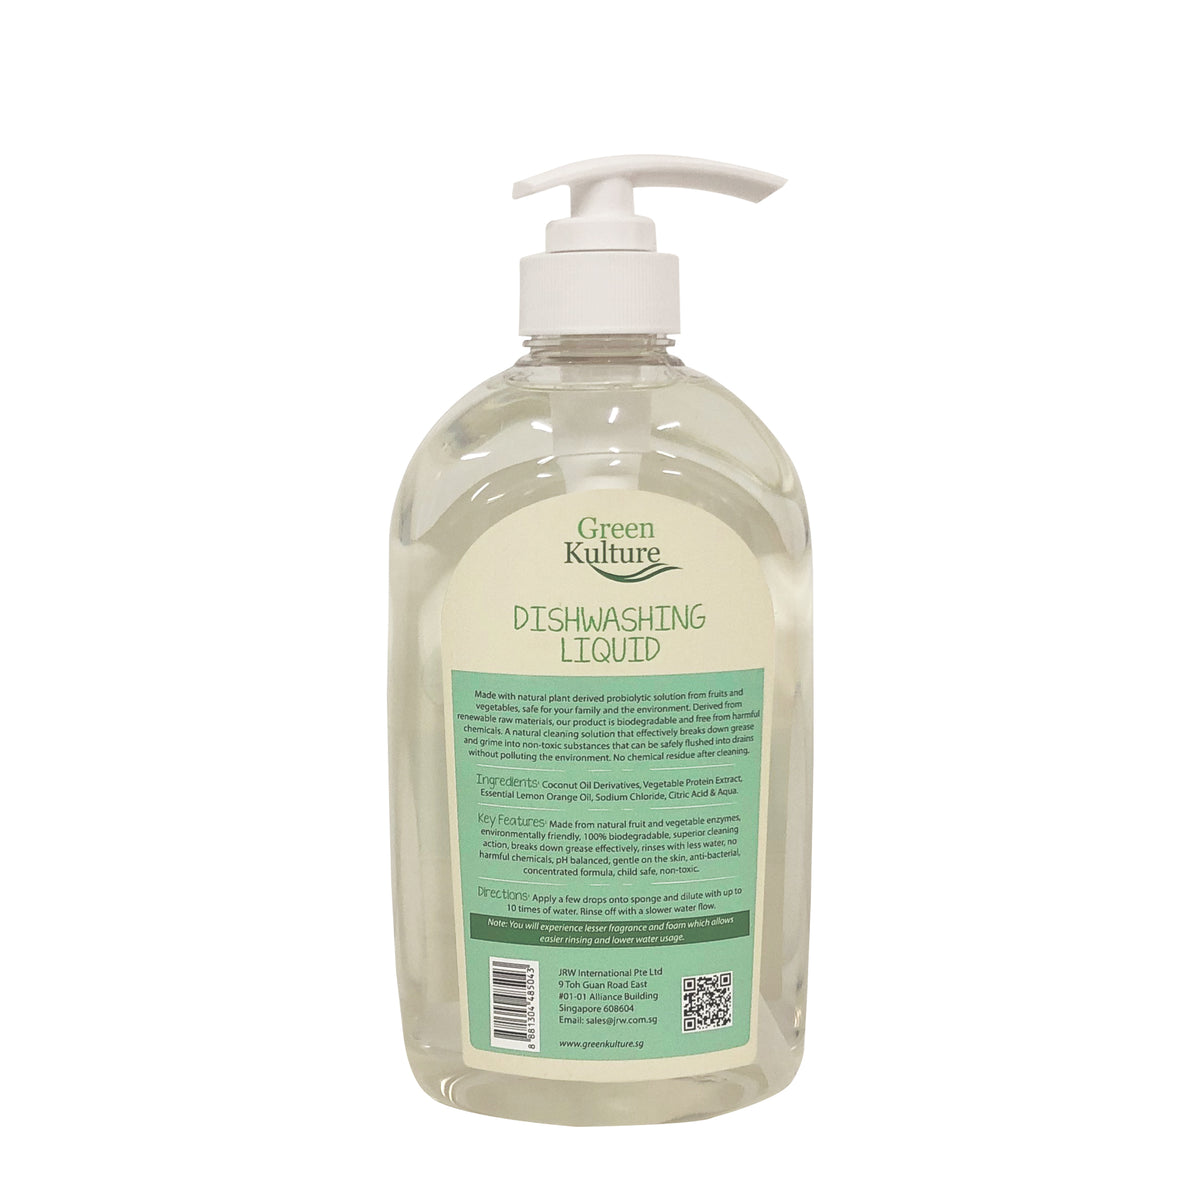 (EVENT HAS ENDED) FREE - Dishwashing Liquid (700ml) (Just pay $2.90 for shipping)